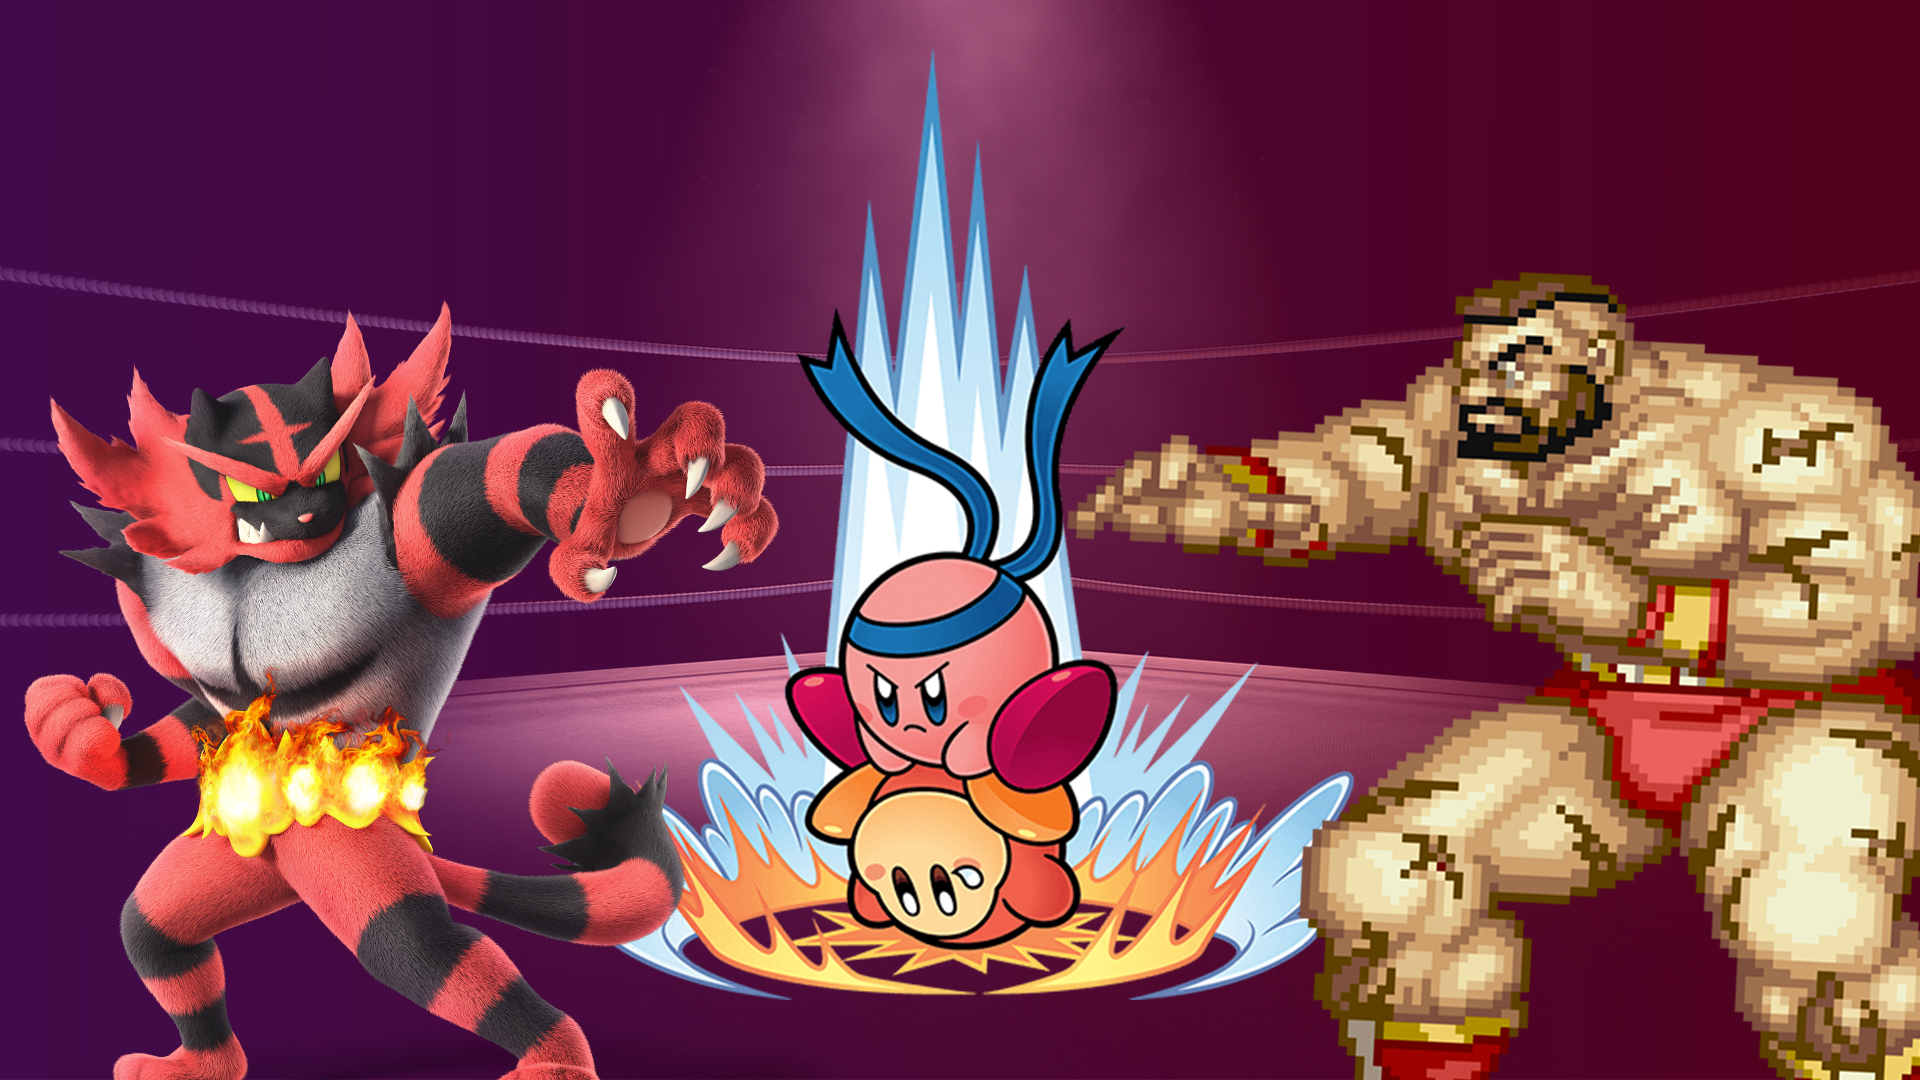 Kirby Suplexes a waddle dee while Zangief and Incineroar watch encouragingly.